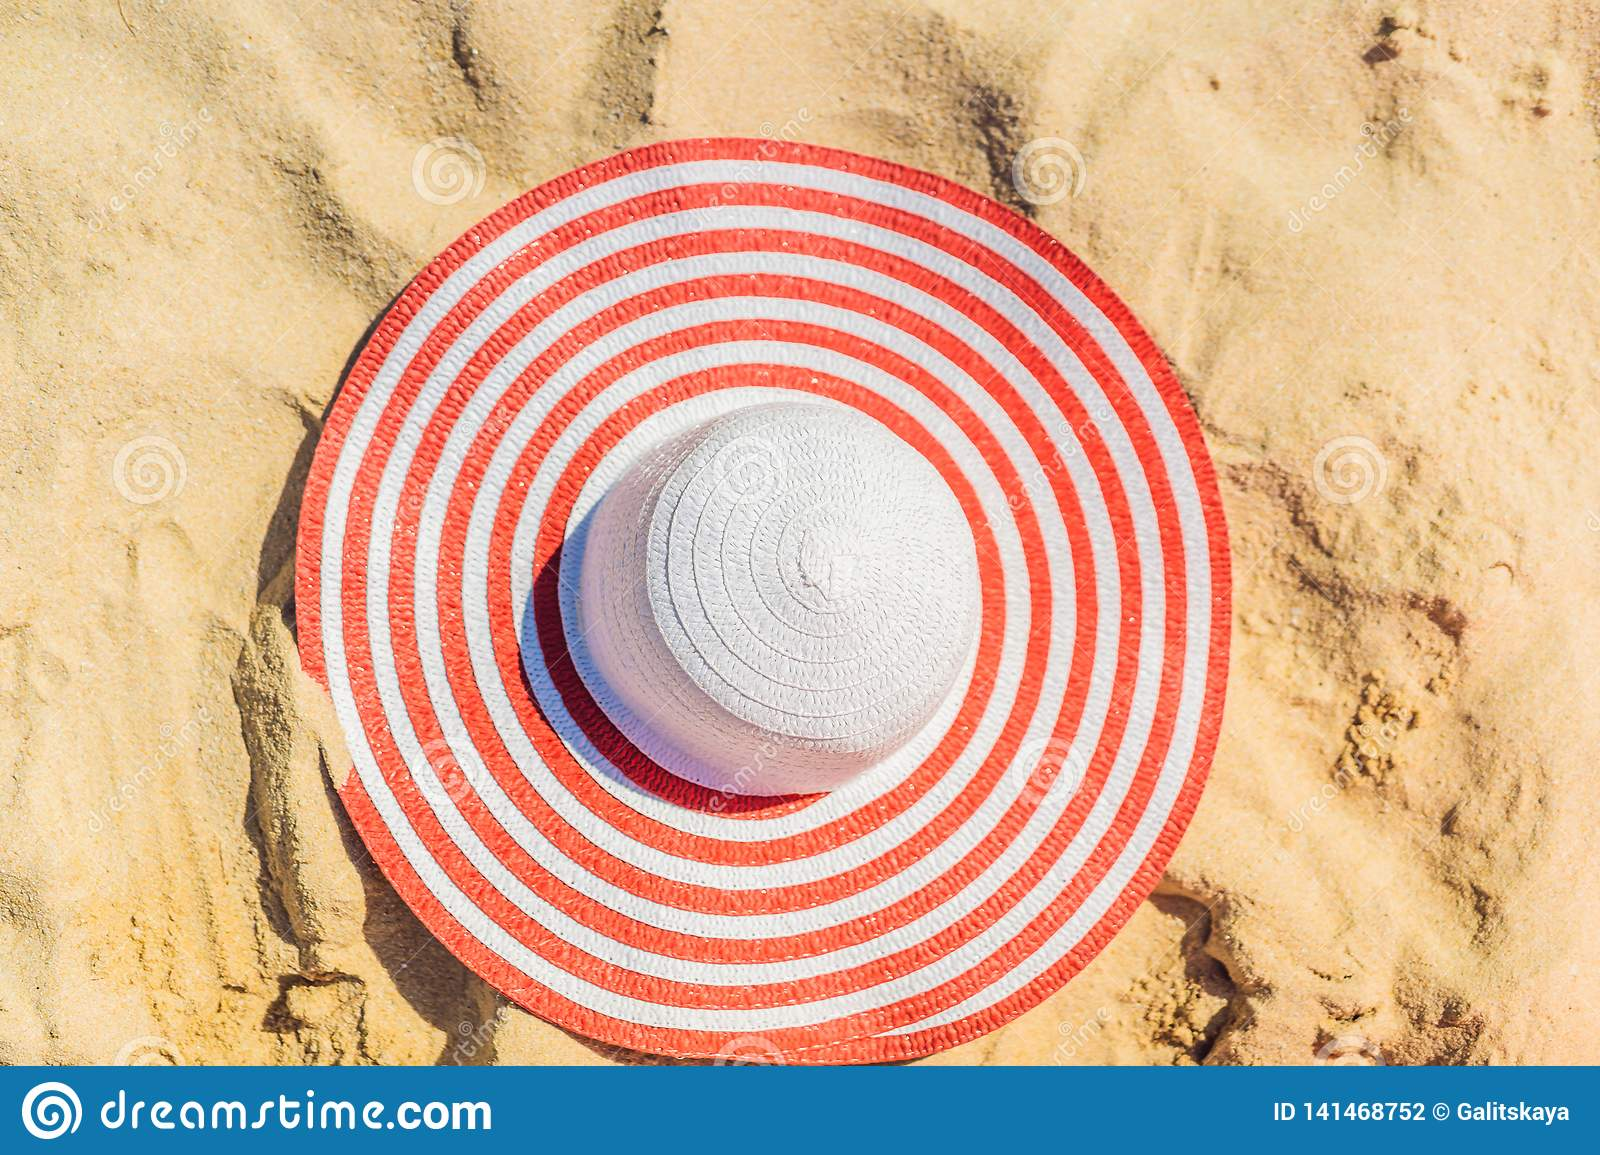 Top view of sandy beach with red striped beach hat Background with copy space and visible sand texture